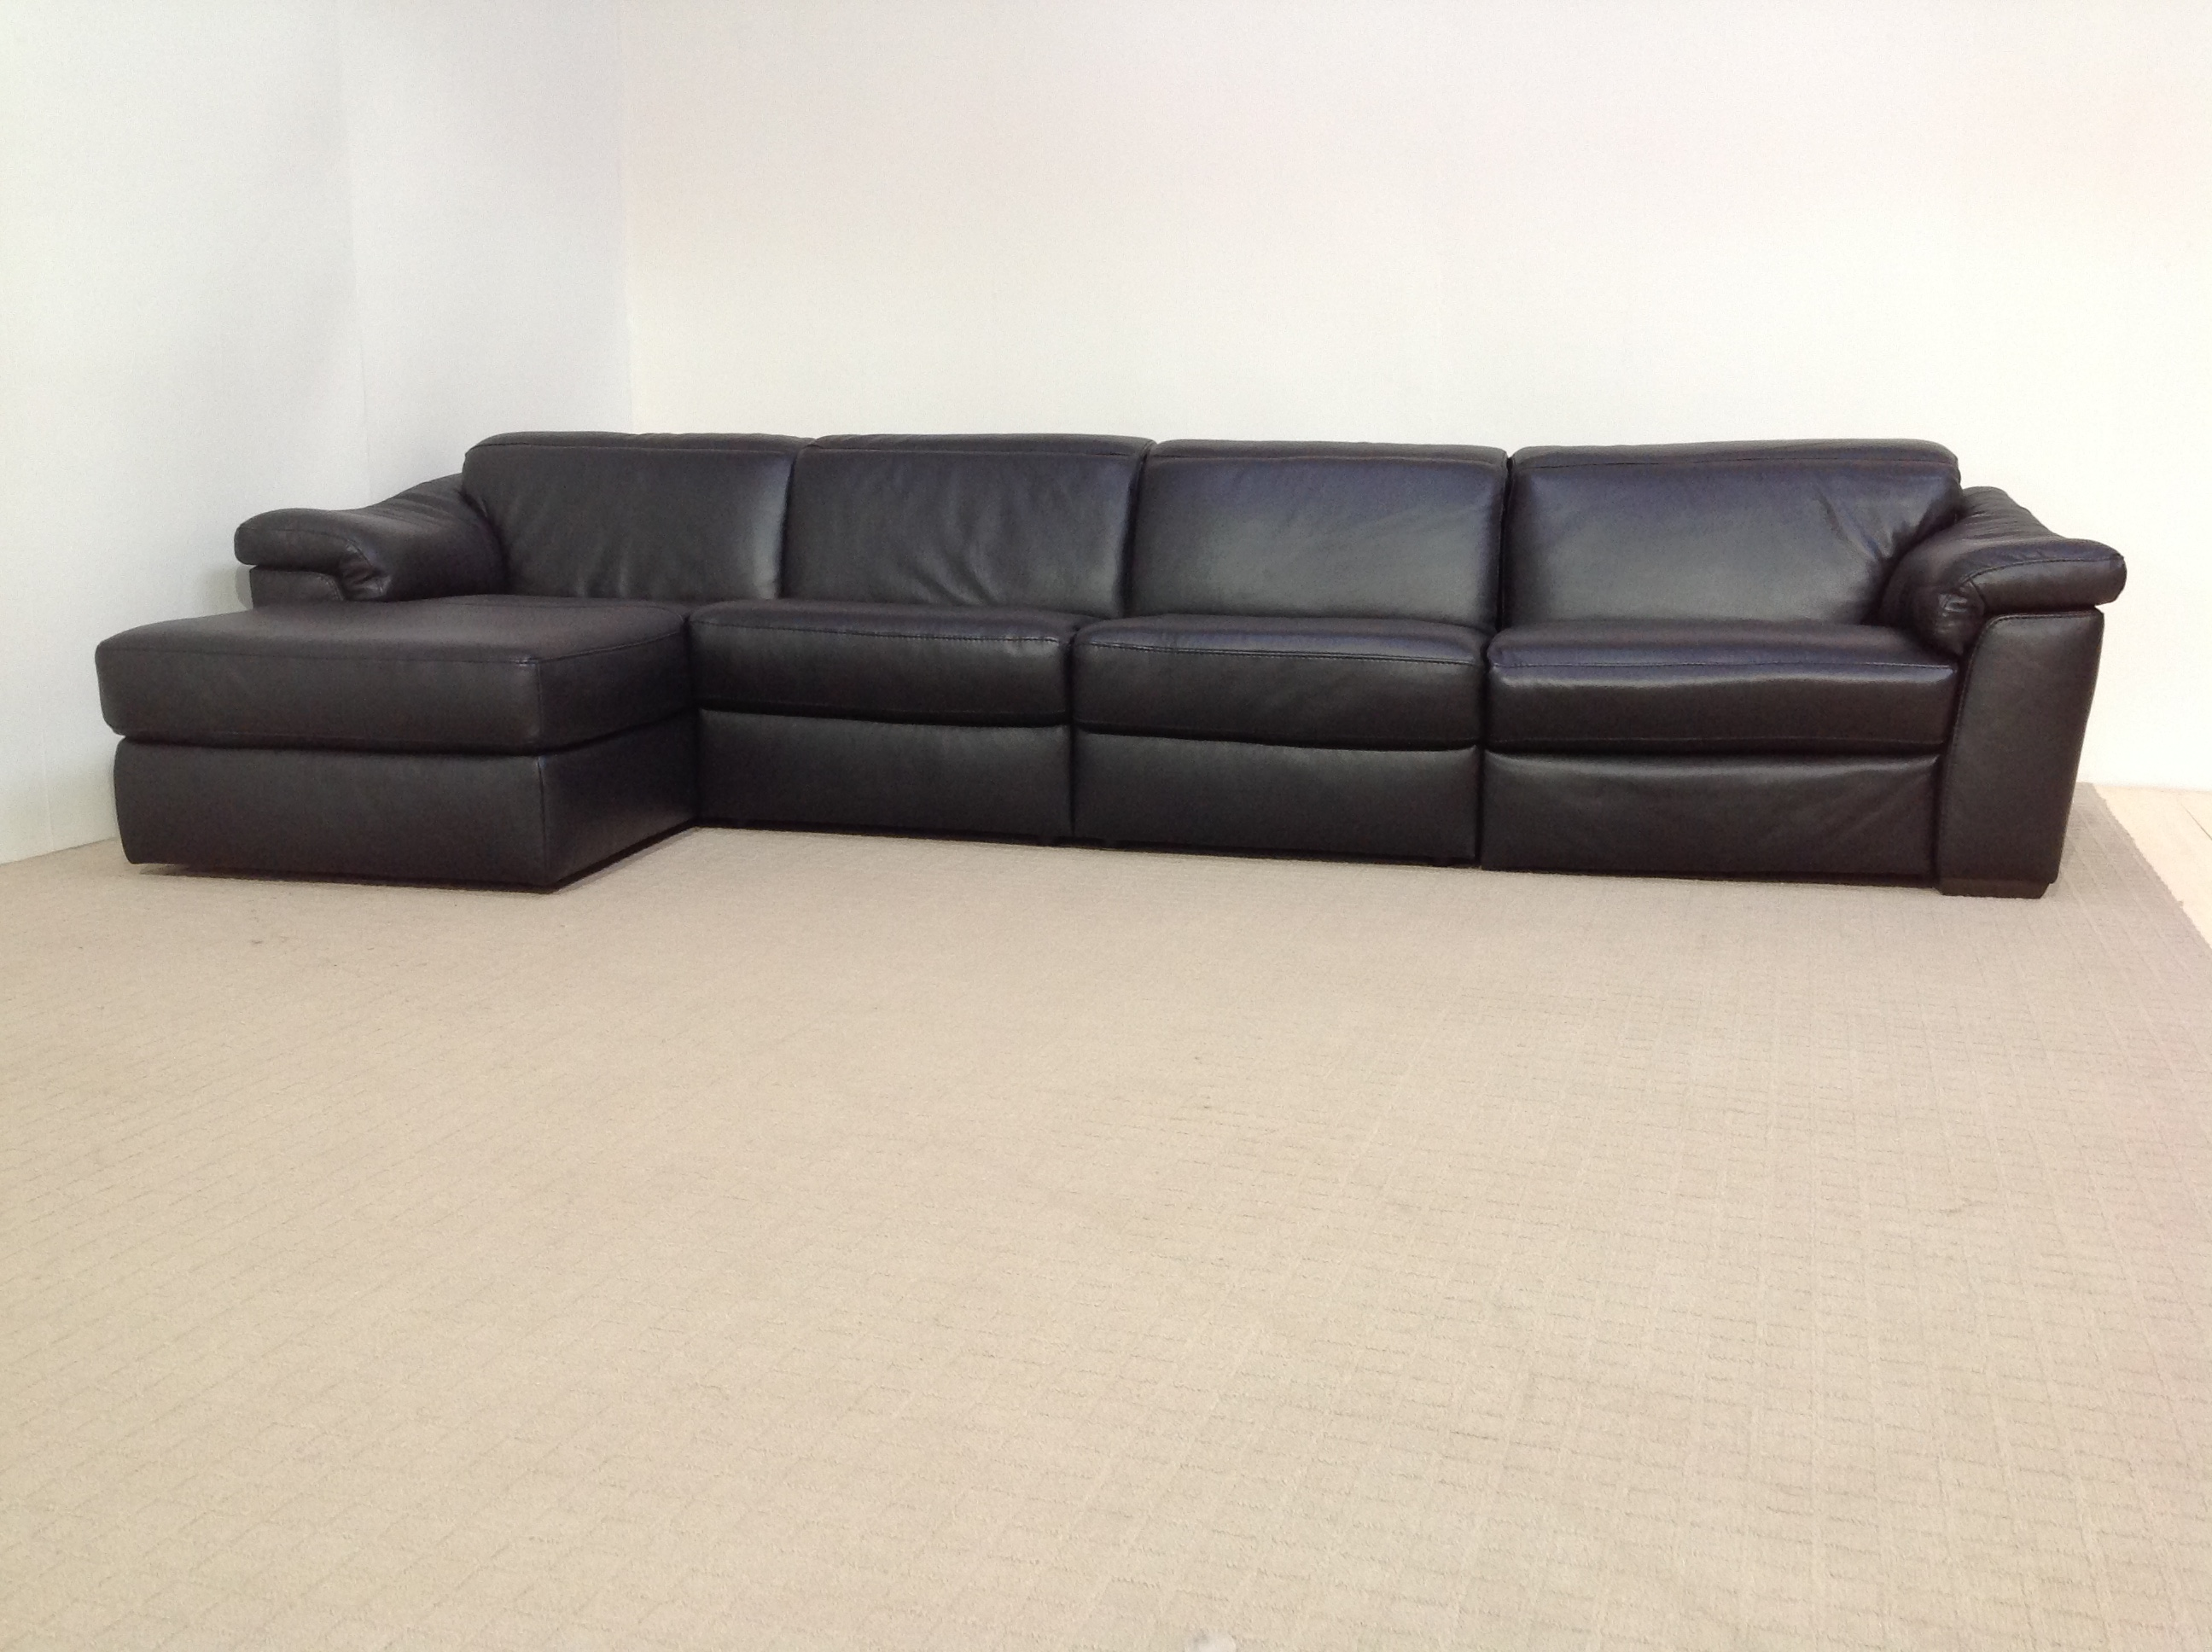 Natuzzi edition sensor b760 power black full leather 4 for 4 seater chaise sofa